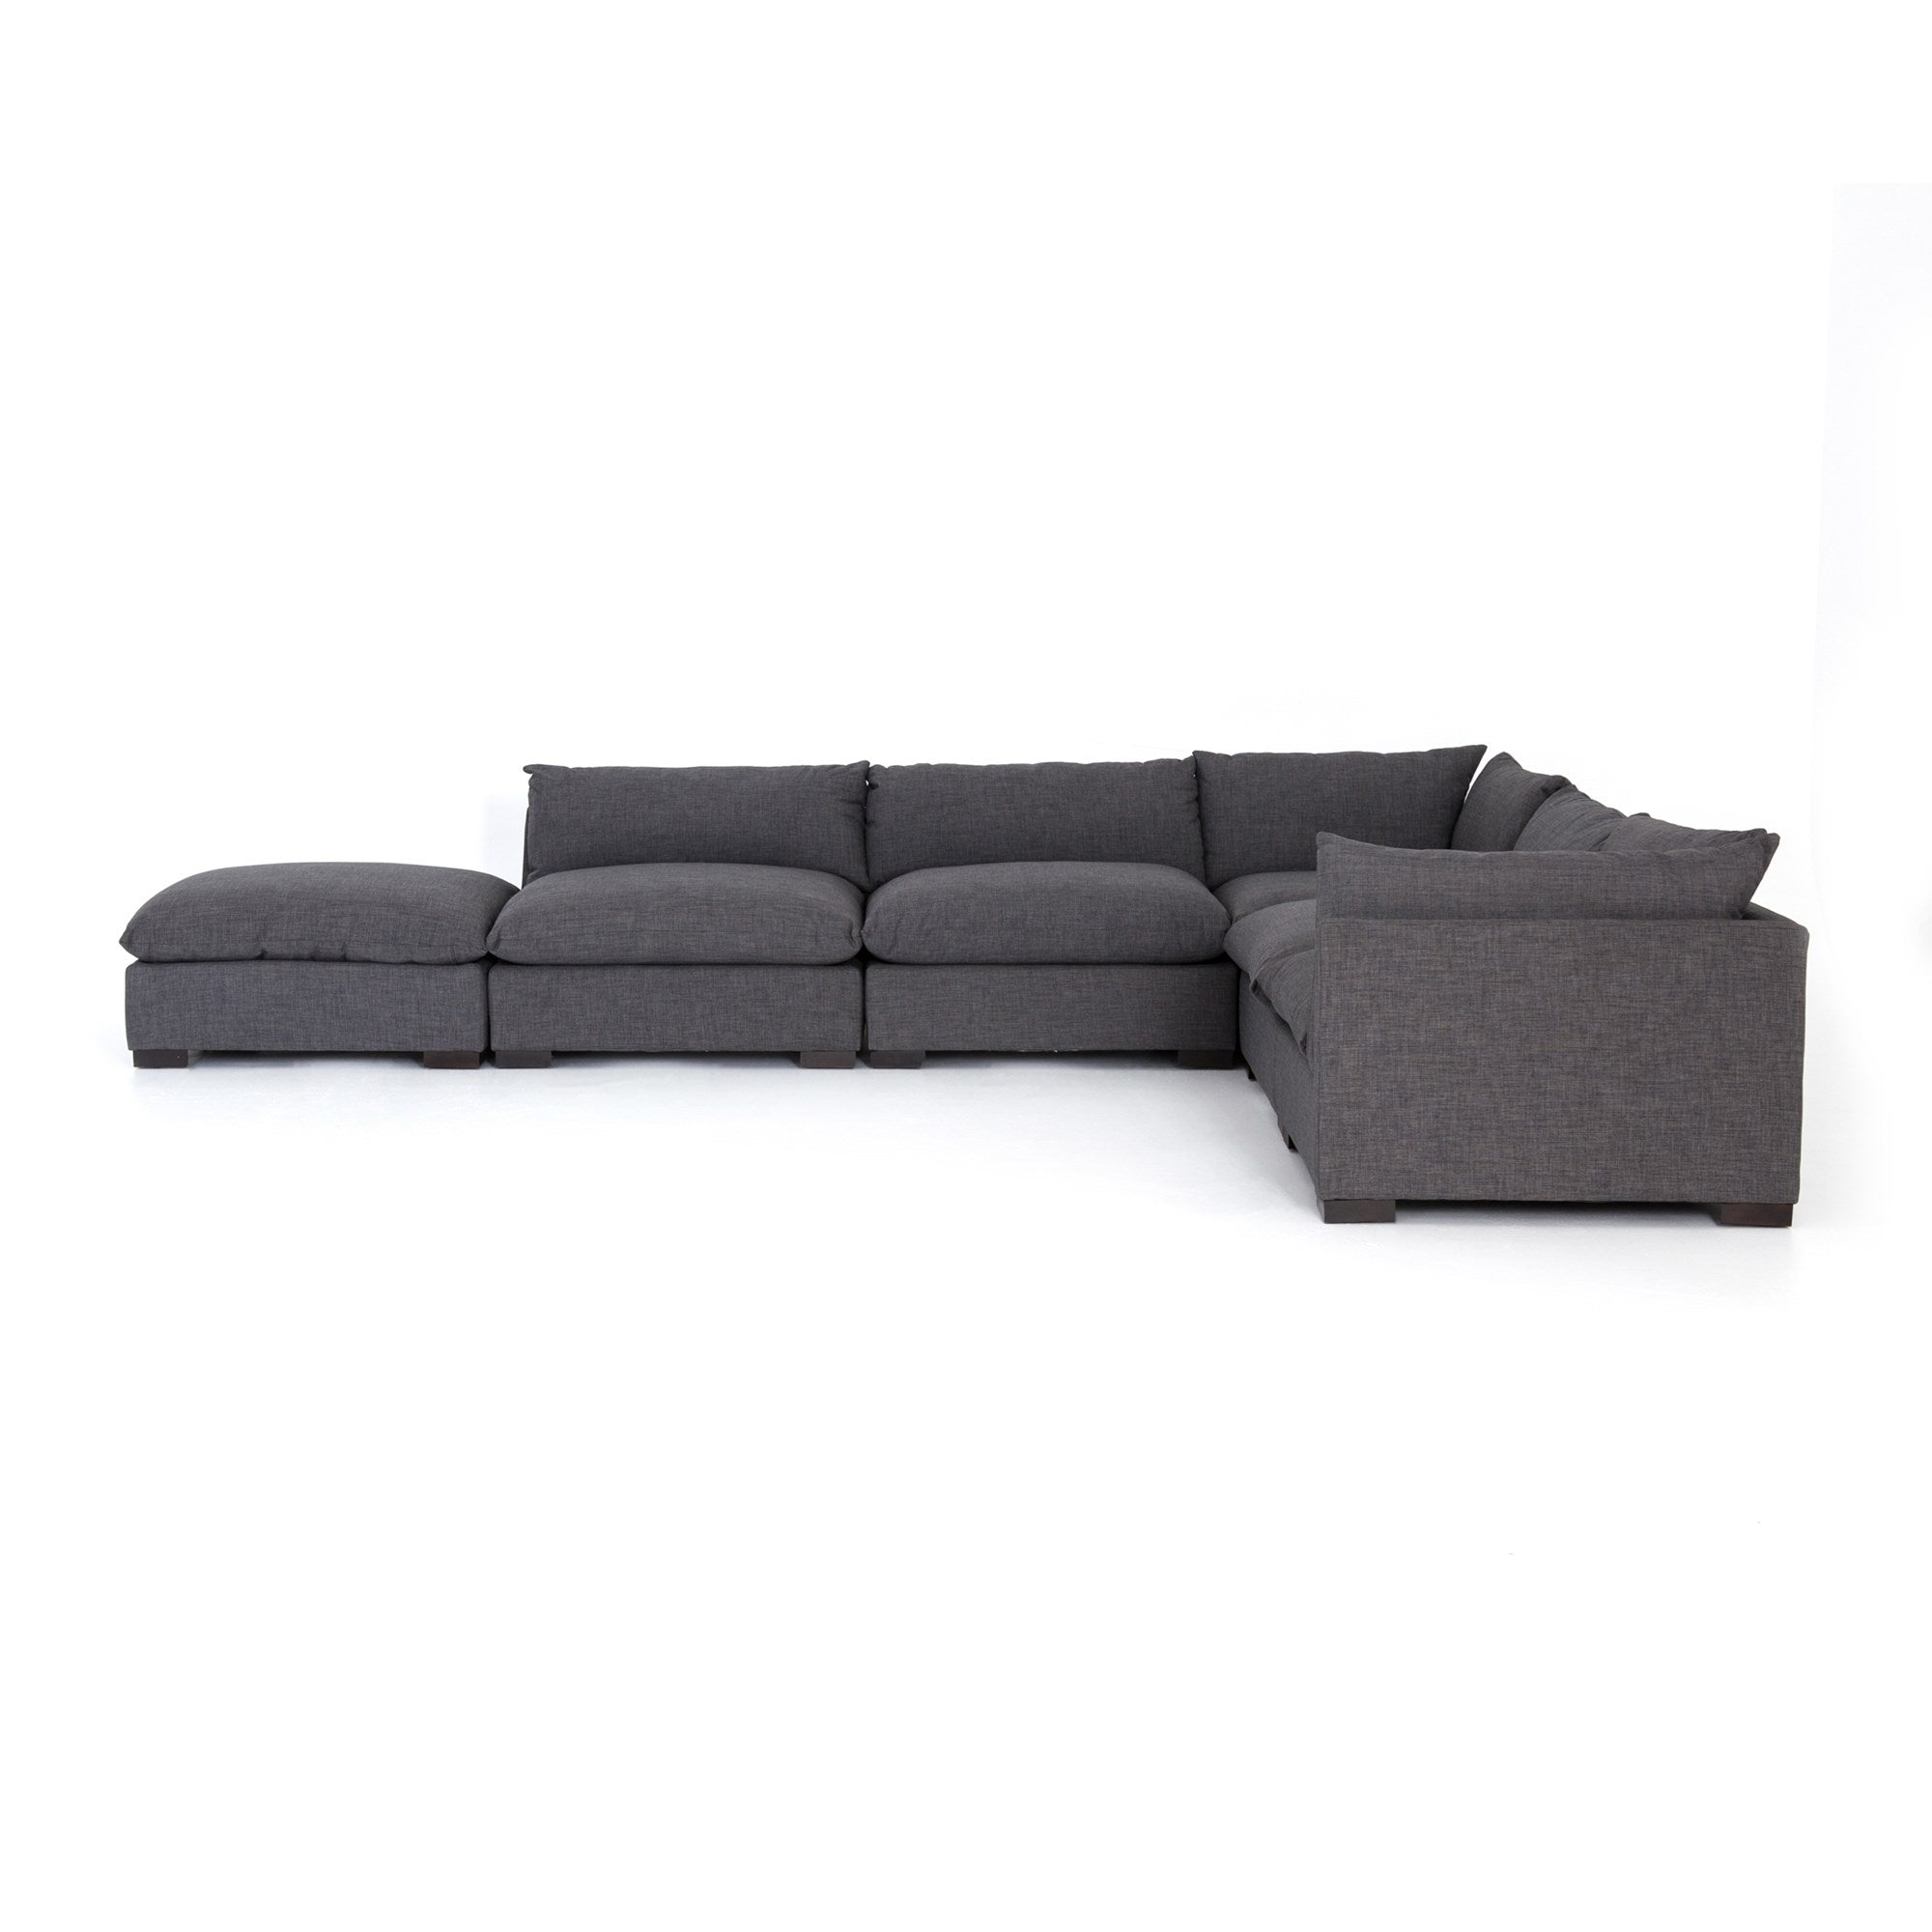 Westwood 5 Piece Sectional with Ottoman